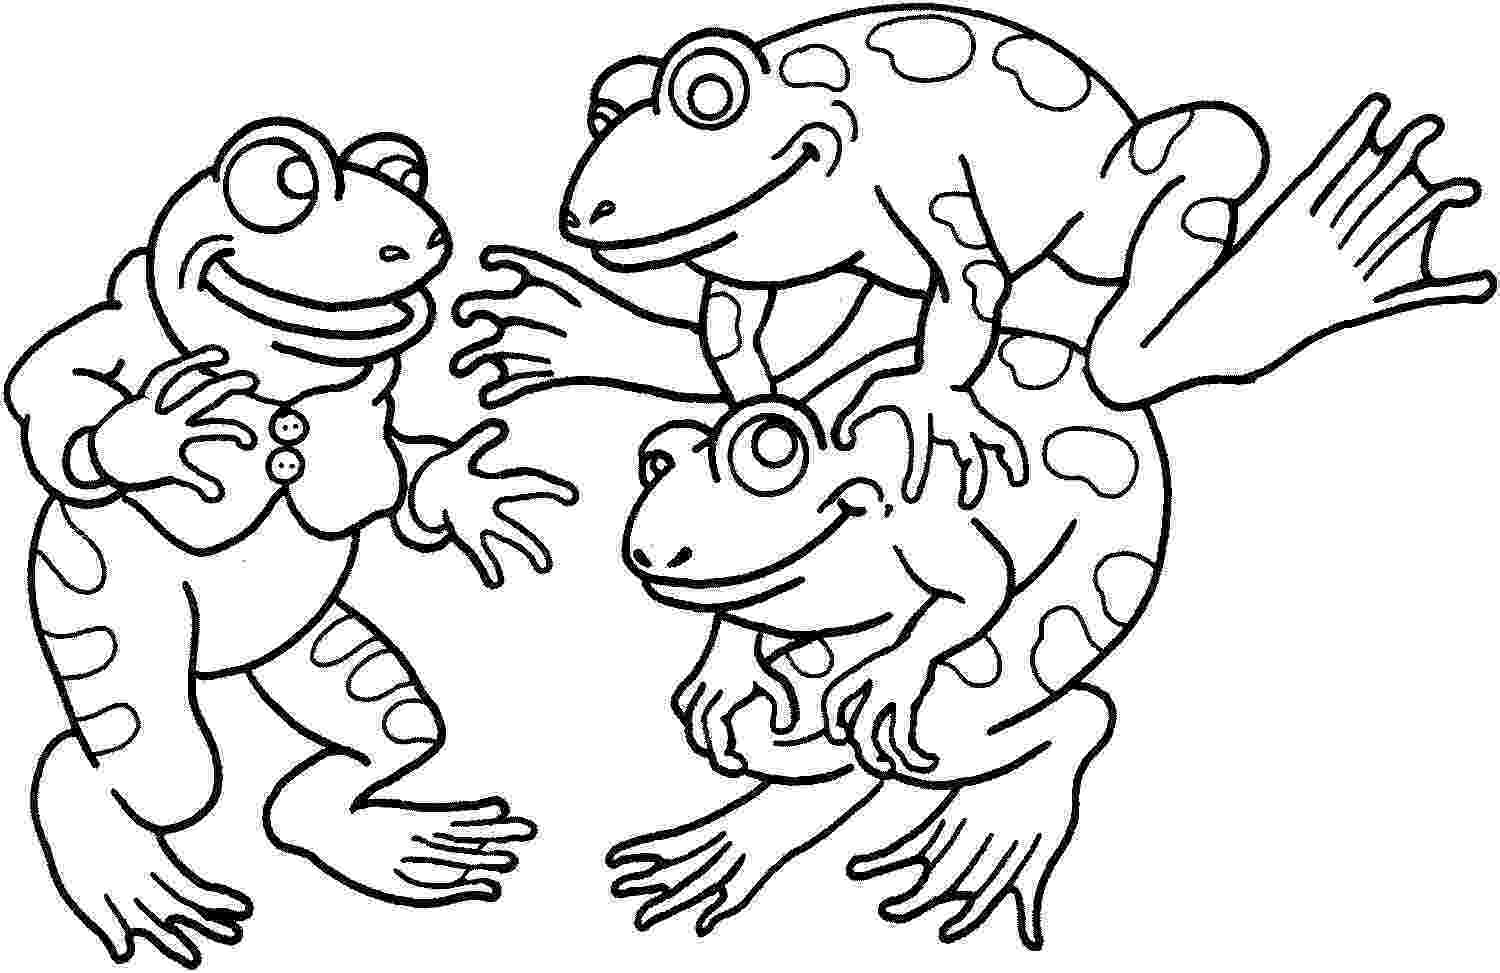 toad pictures to print free printable frog coloring pages for kids pictures print toad to